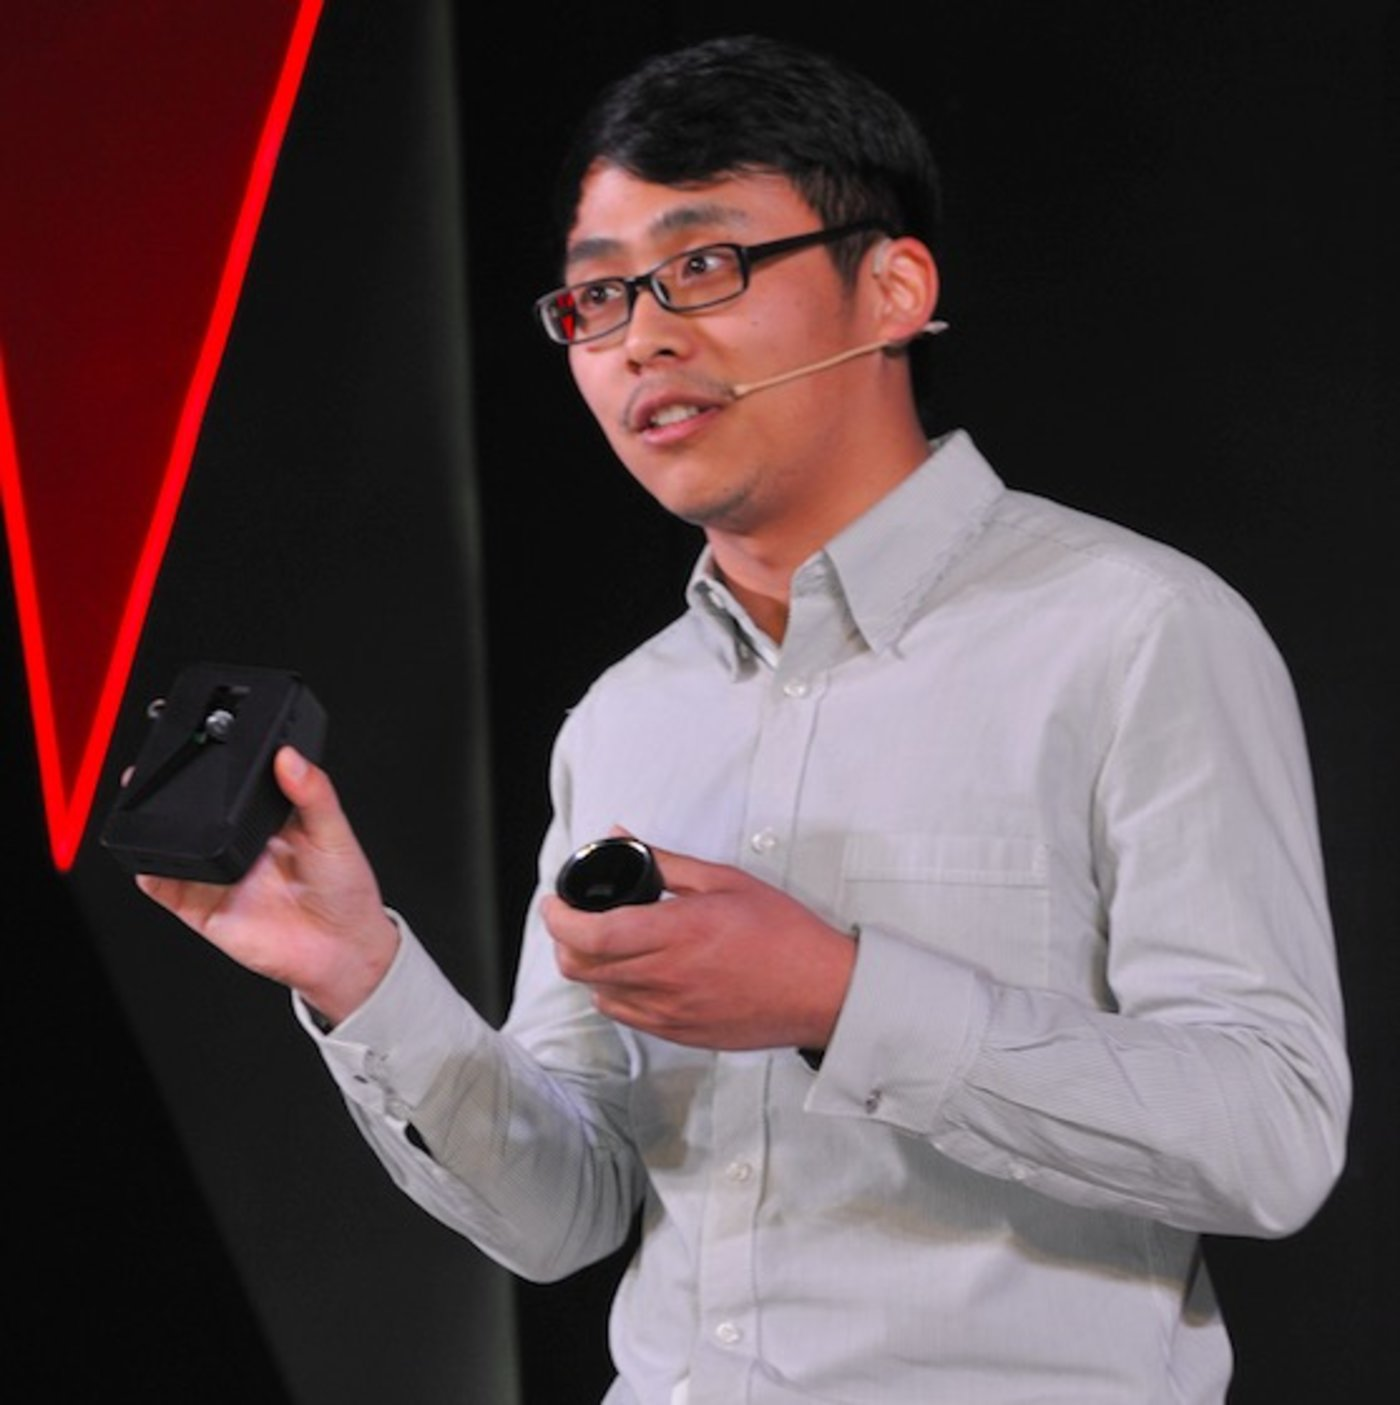 MINIEYE's founder Liu Guoqing showing his products